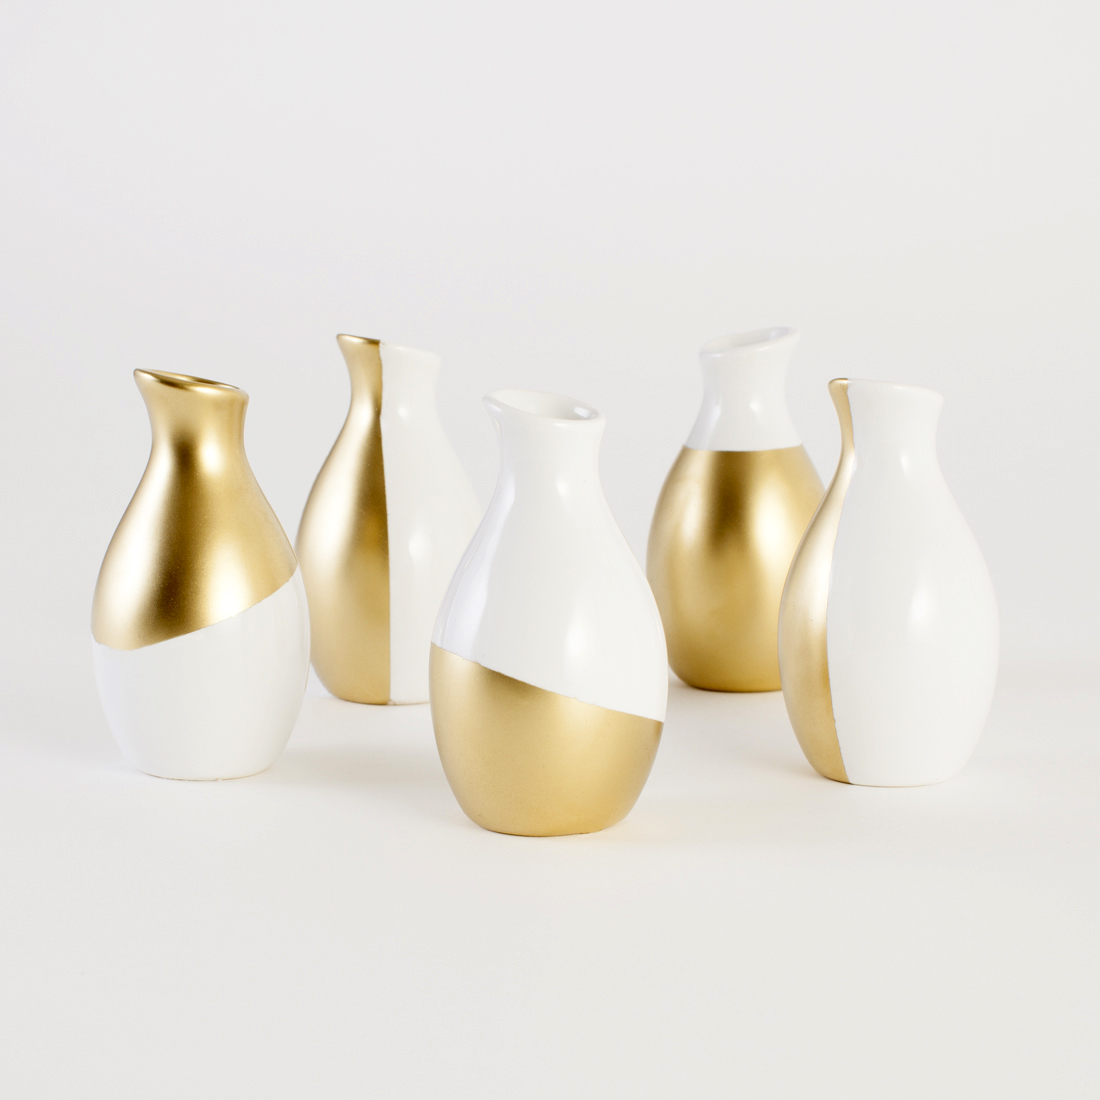 Home Vases Making Gold Dipped Vases At Home Adorable Home